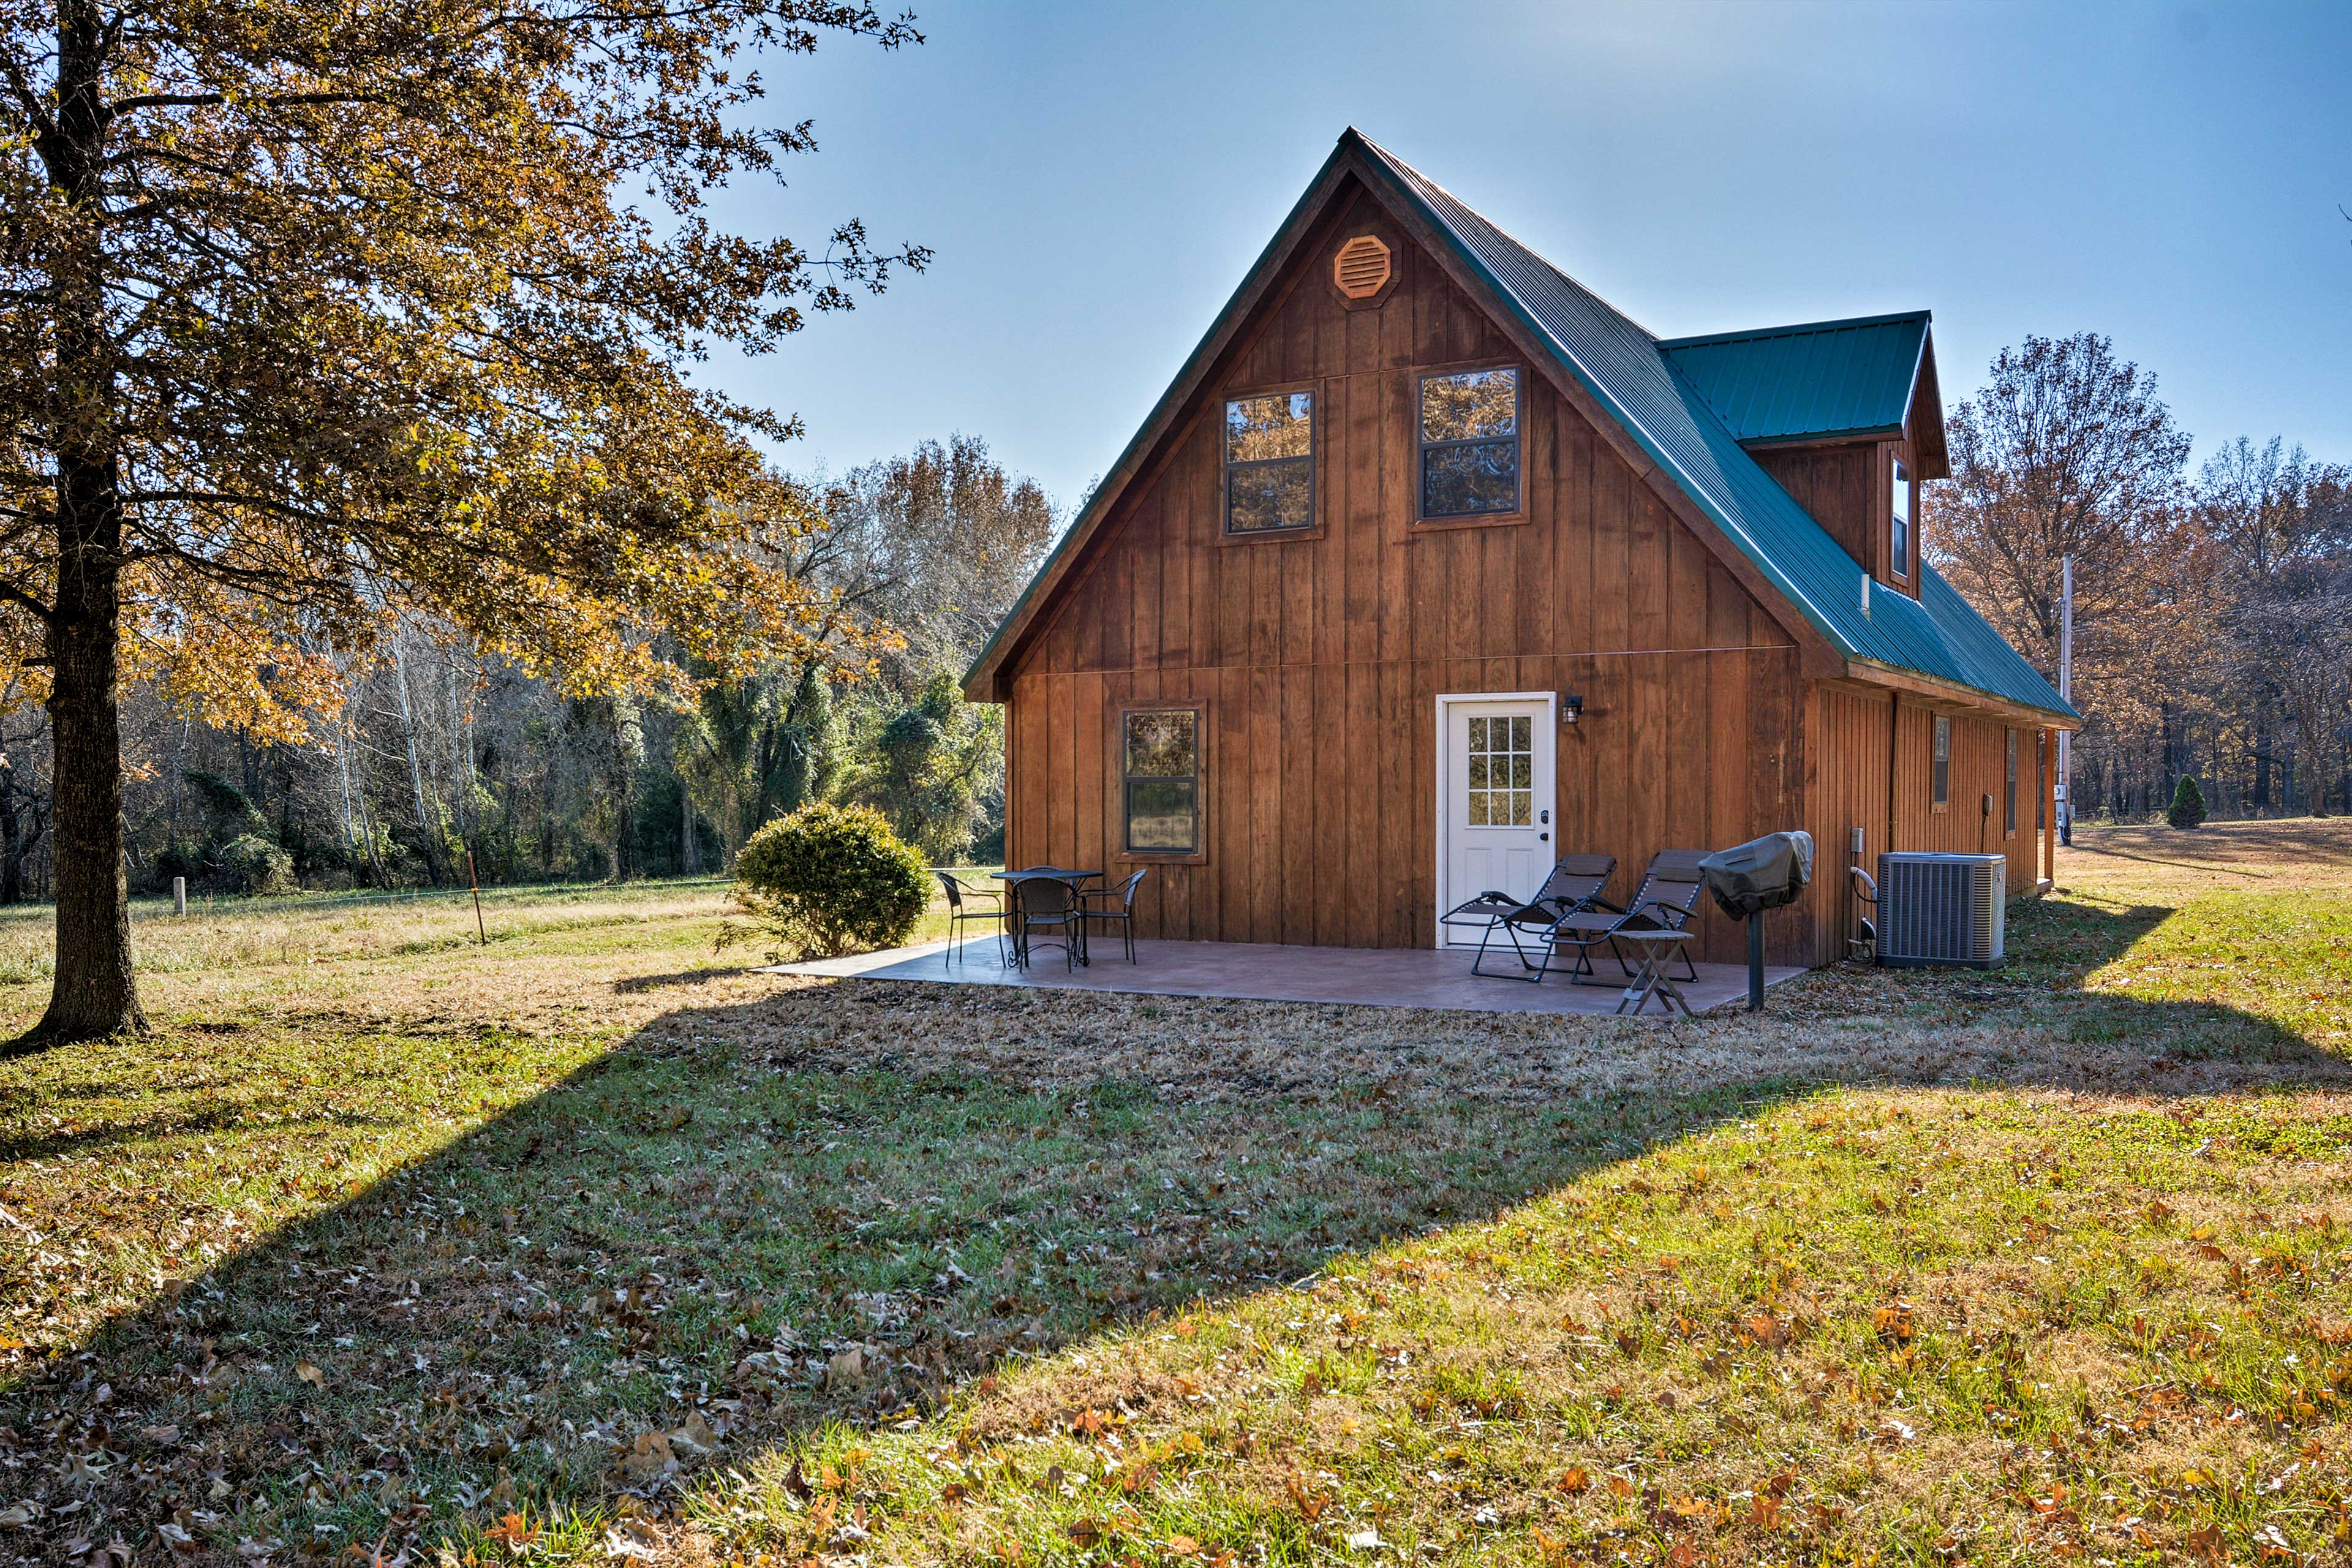 Book a trip to this one-of-a-kind vacation rental cabin in Moundville.